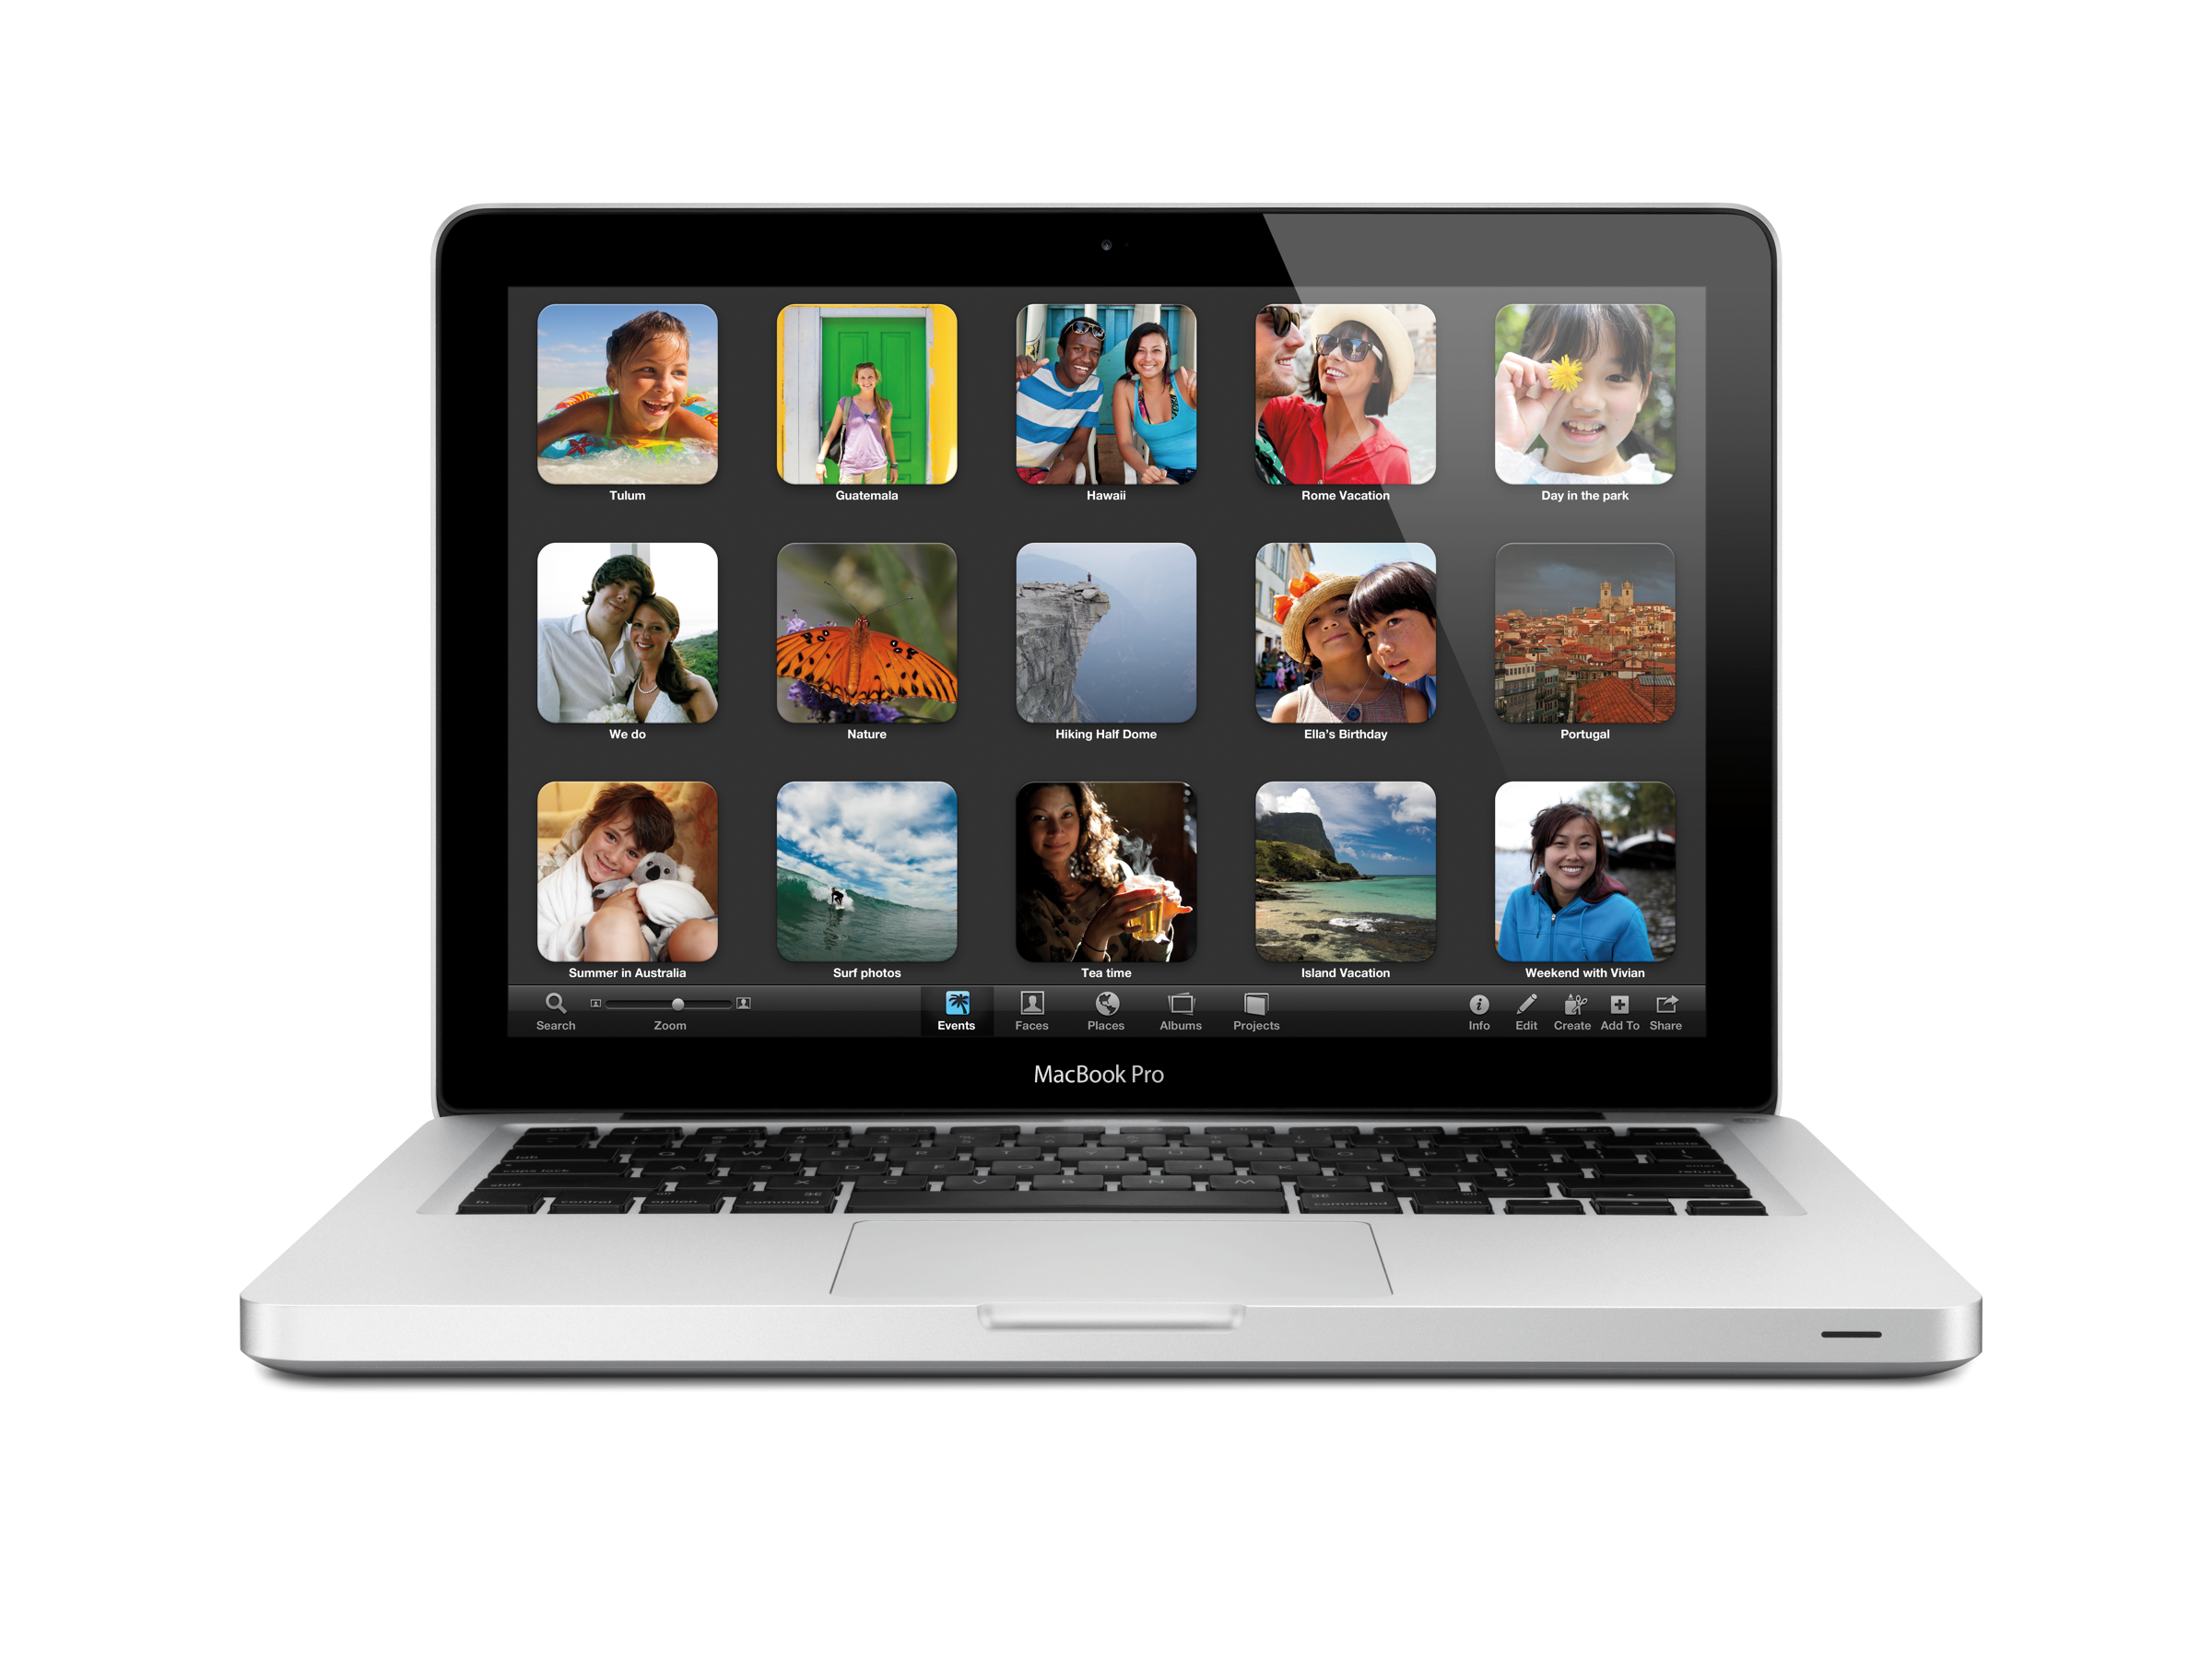 MacBook Pro 2013: Top 3 Features Business Users Will Love